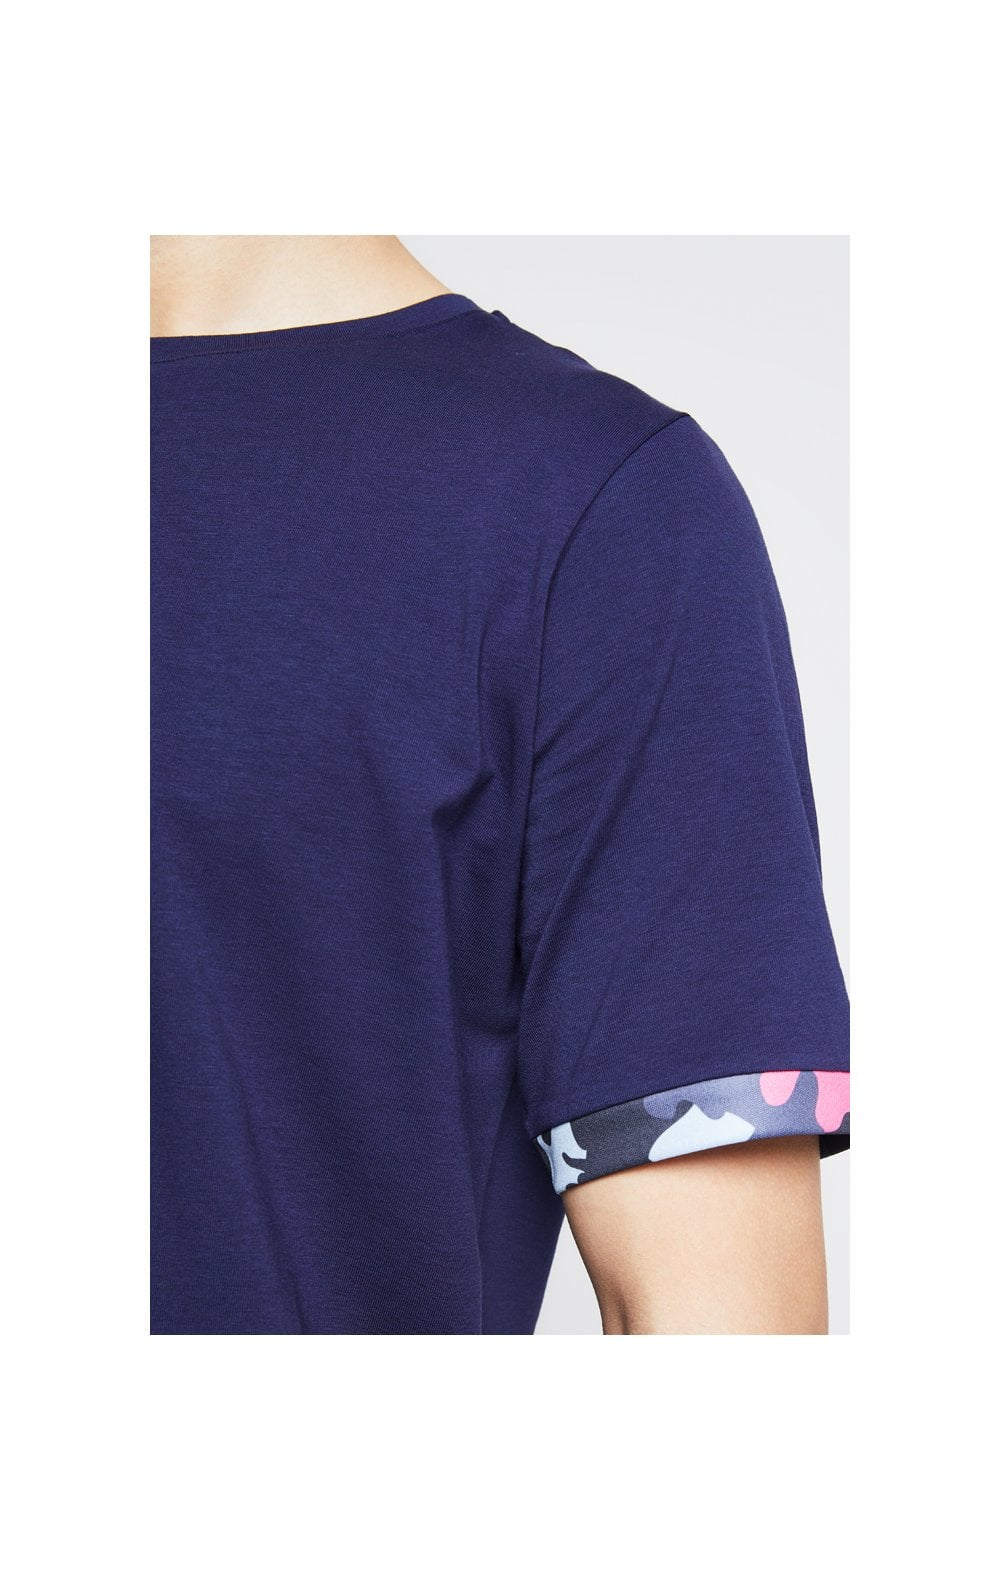 Illusive London Contrast Cuff Tee  Navy & Neon Pink Camo Kids Top